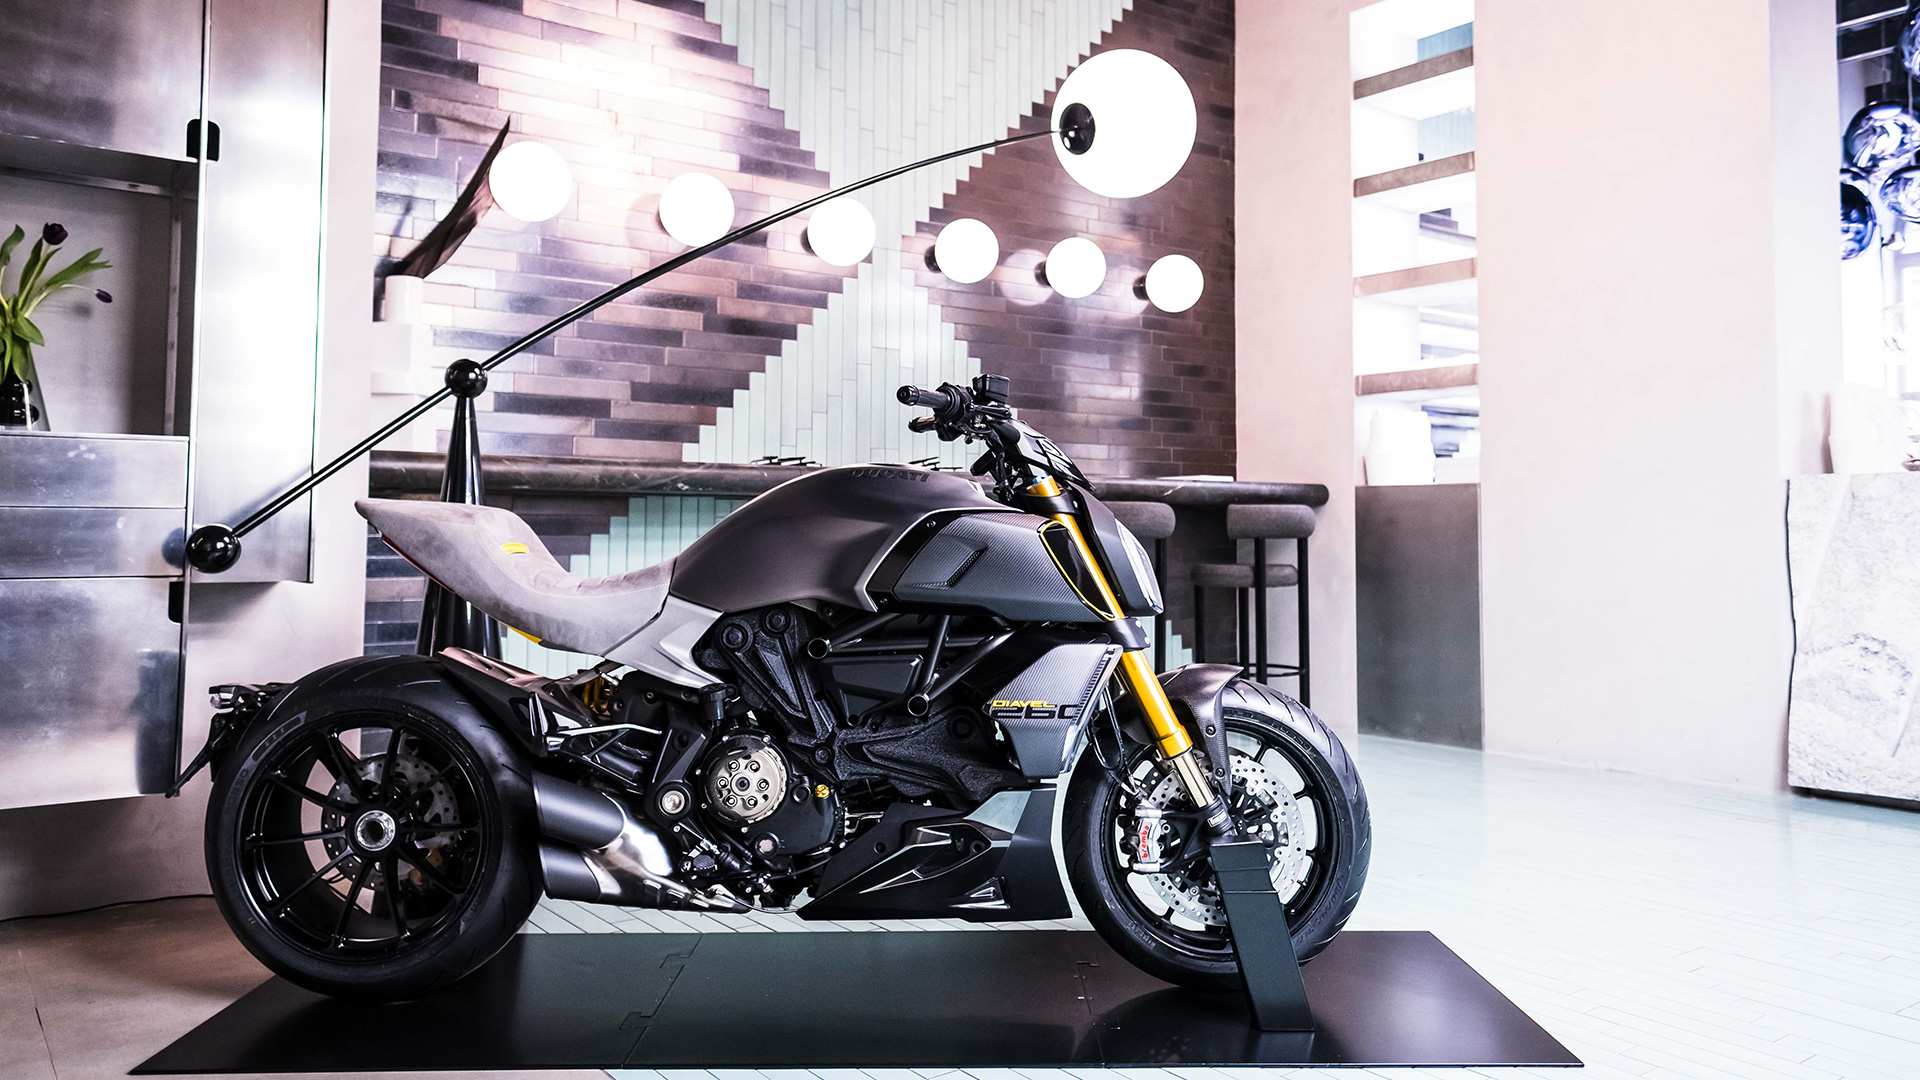 Diavel-1260-Design-Week-03-Gallery-1920x1080.jpg